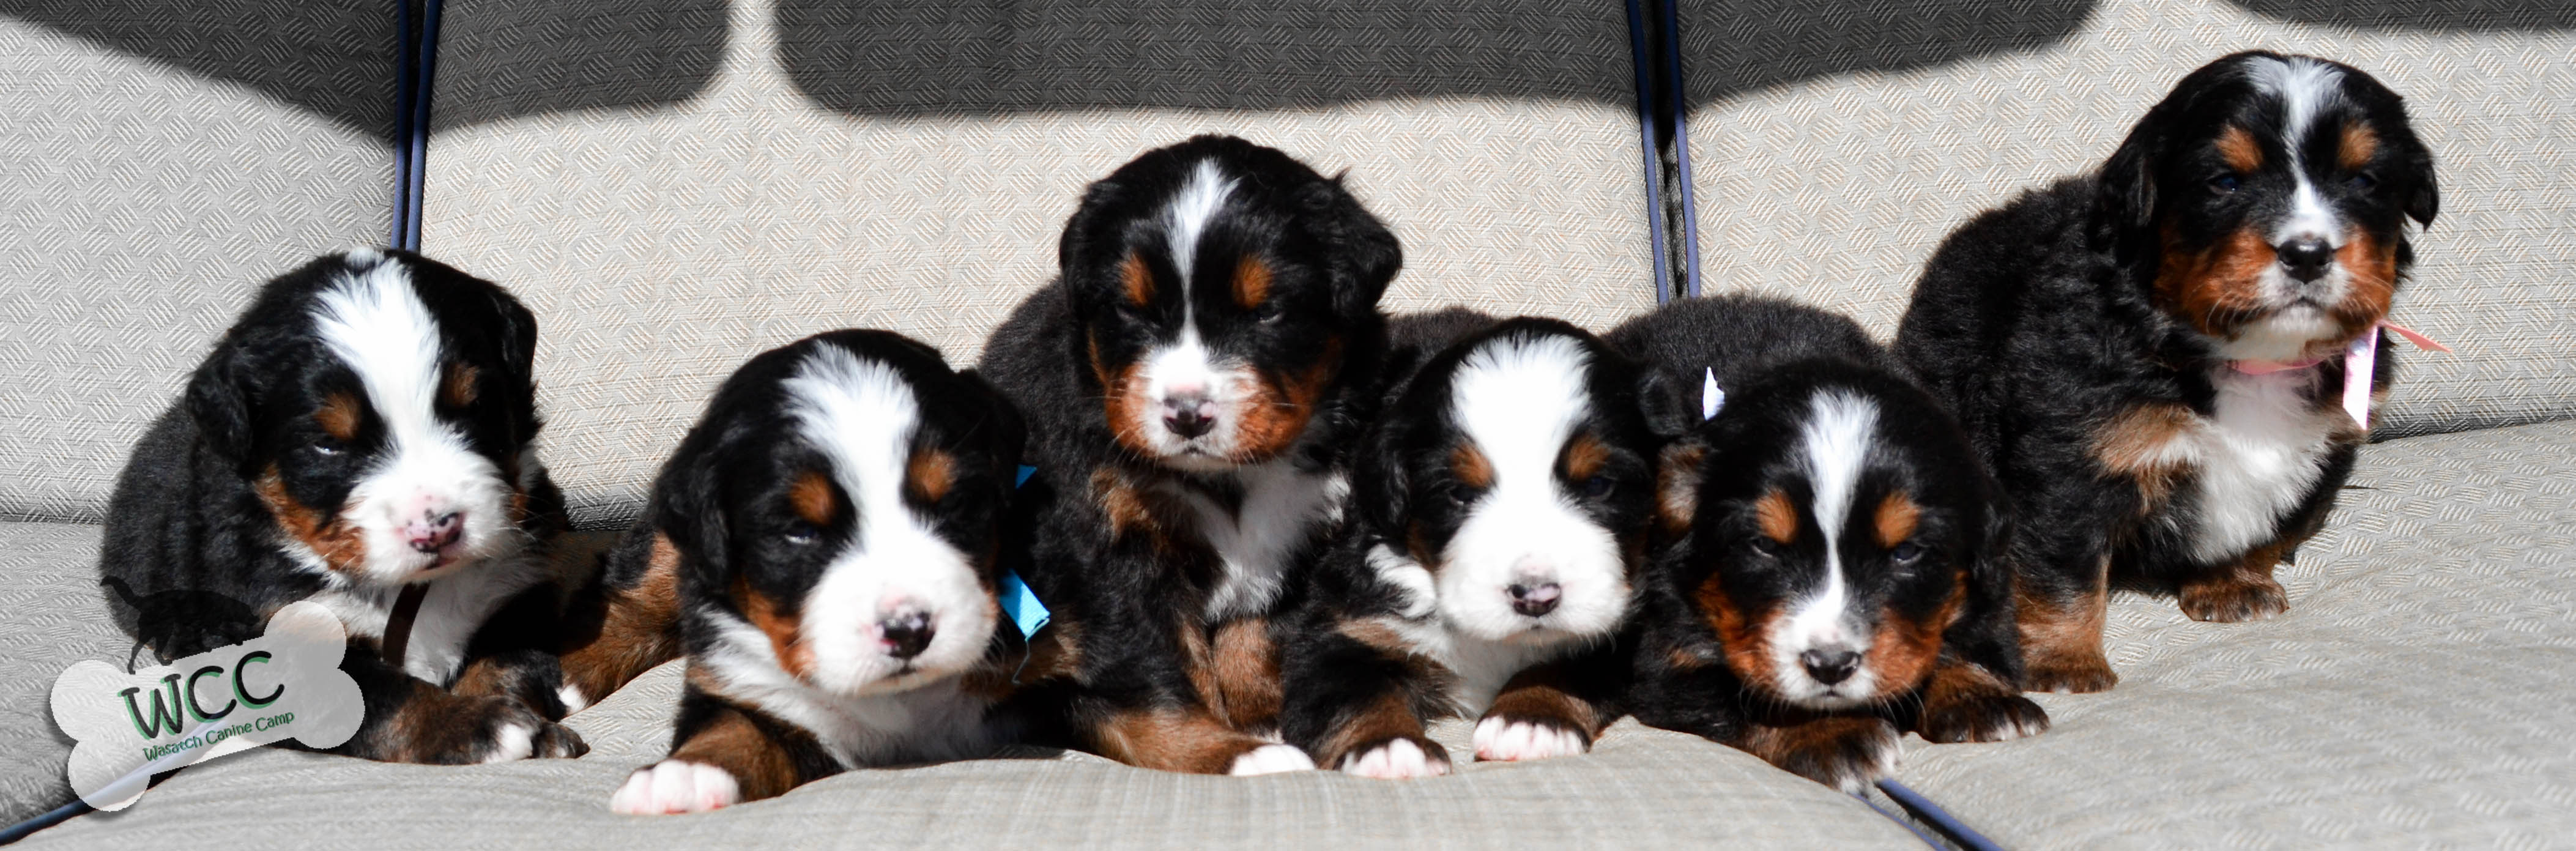 Puppies Wccs Bernese Mountain Dog Puppies